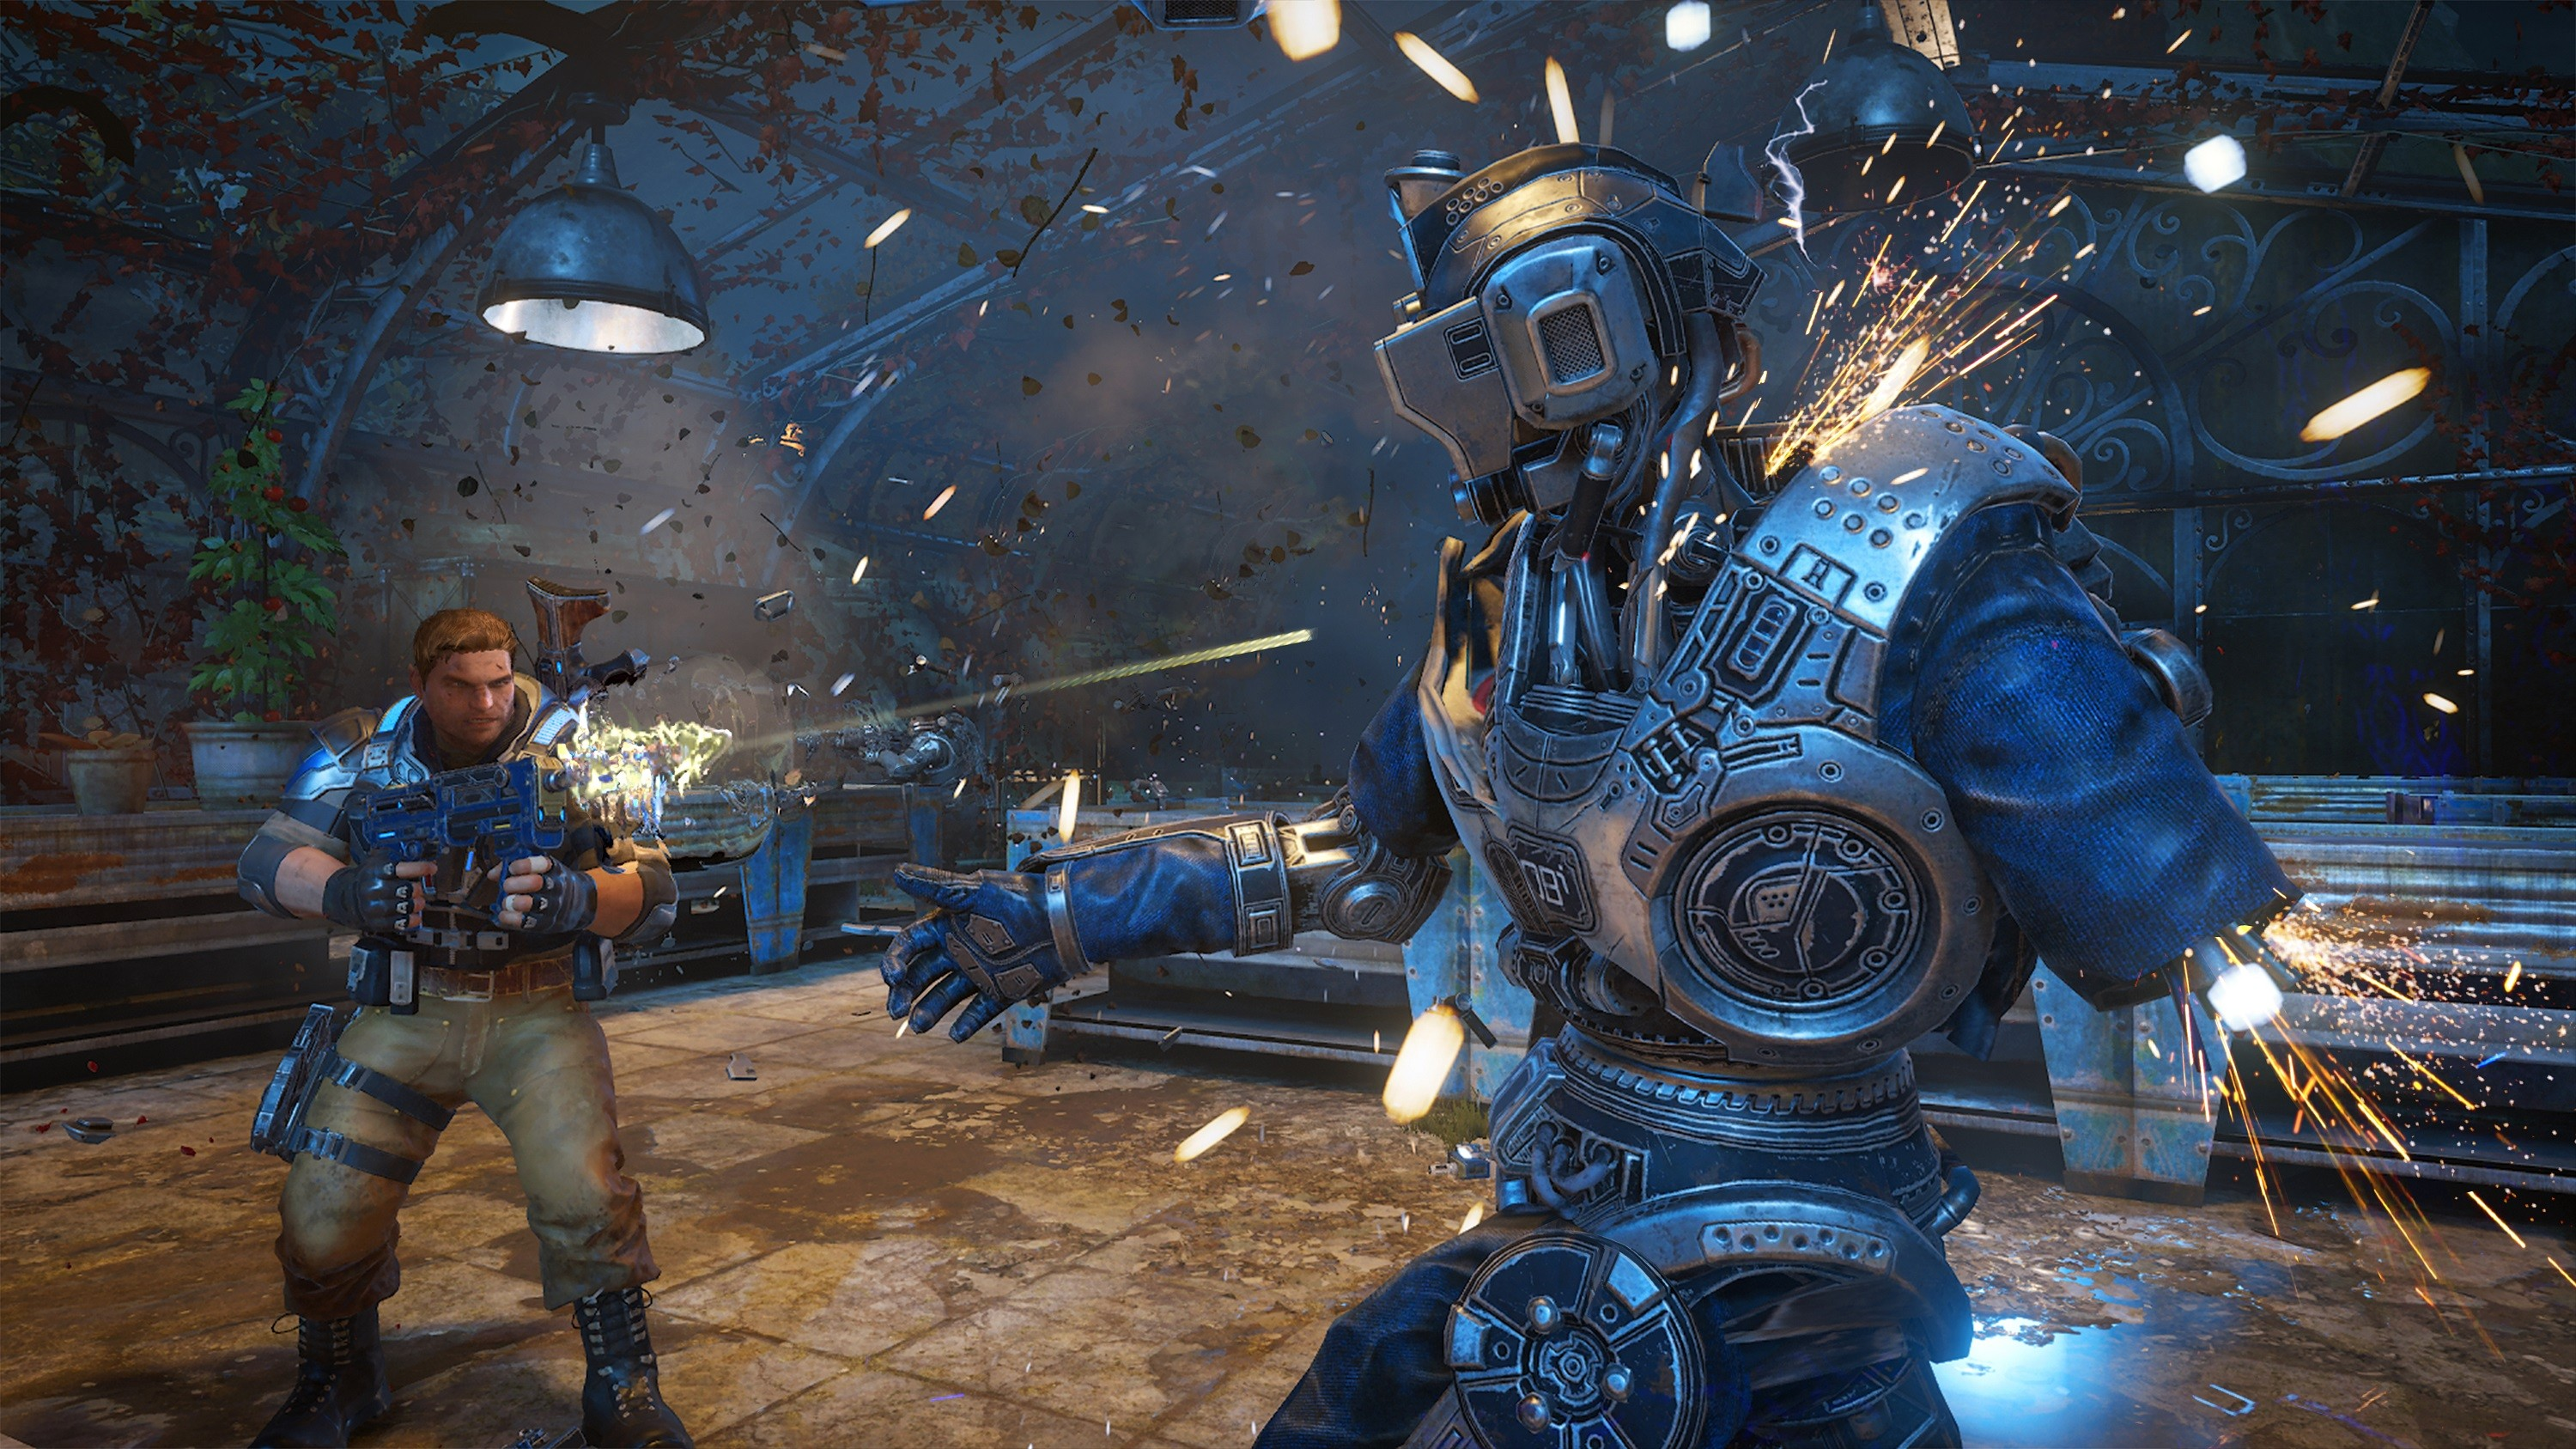 Gears of War 4 benchmarked in DX12 at 8K resolution